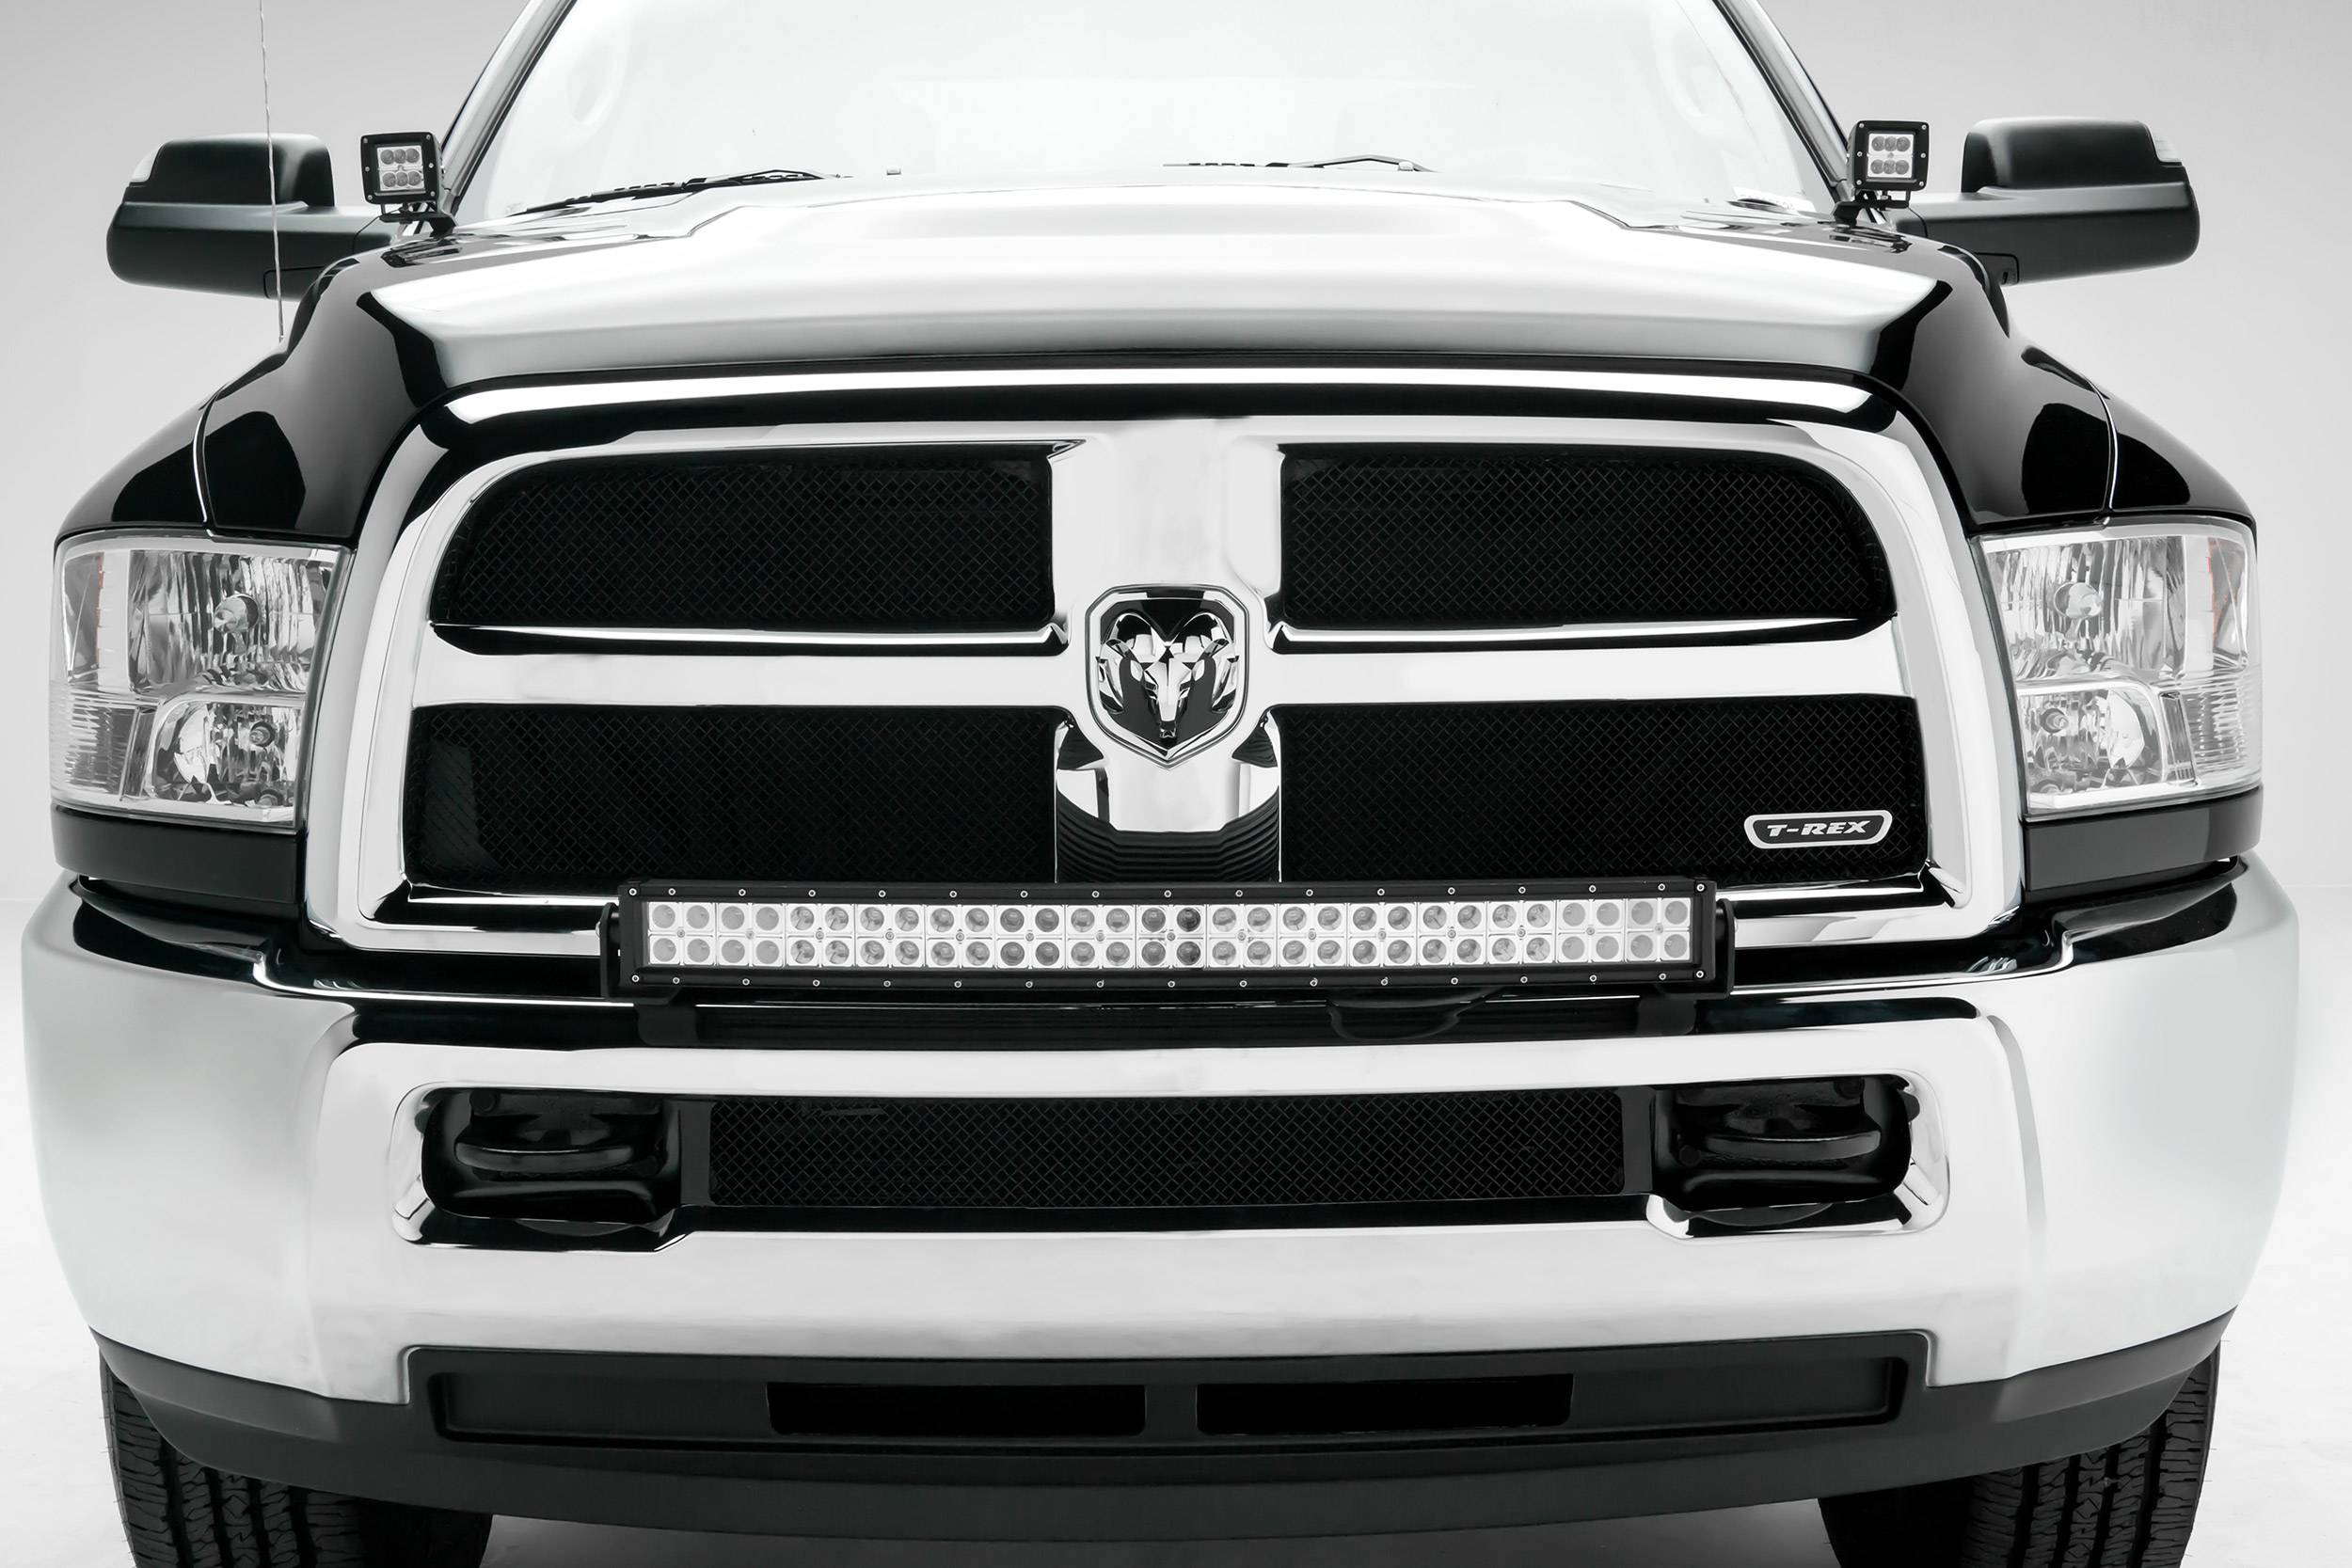 ZROADZ                                             - 2010-2018 Ram 2500, 3500 Front Bumper Top LED Kit with (1) 30 Inch LED Curved Double Row Light Bar - PN #Z324522-KIT